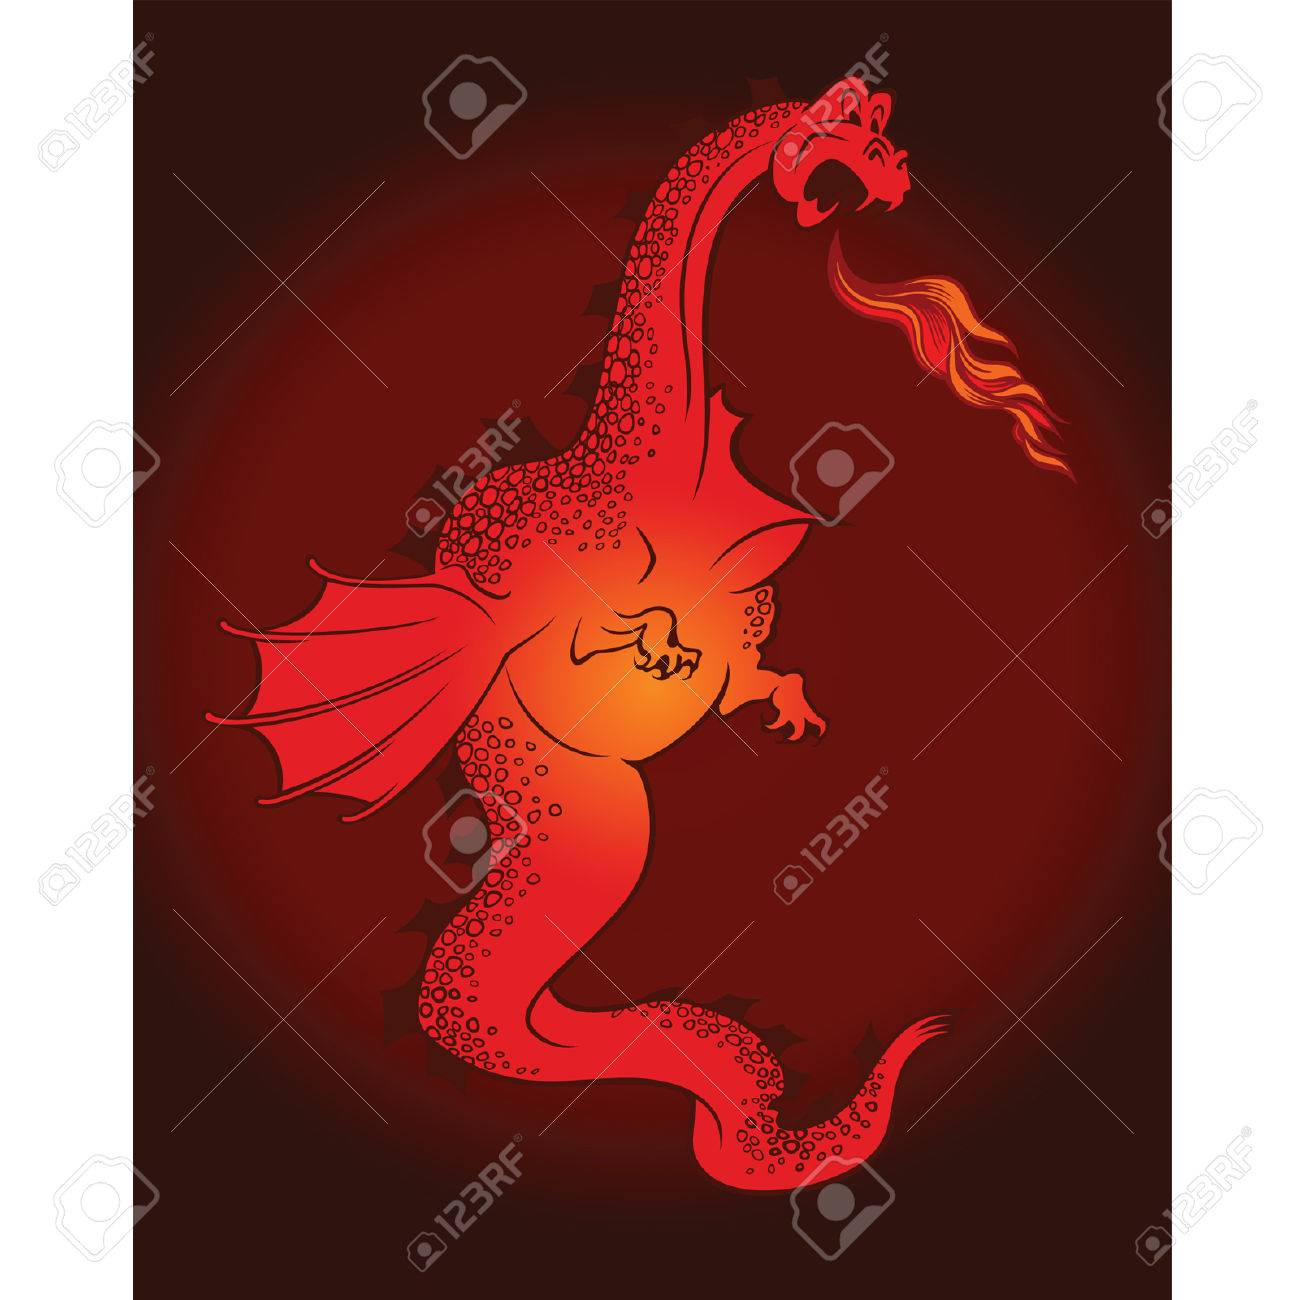 Cartoon red dragon with wings Stock Vector - 8863521